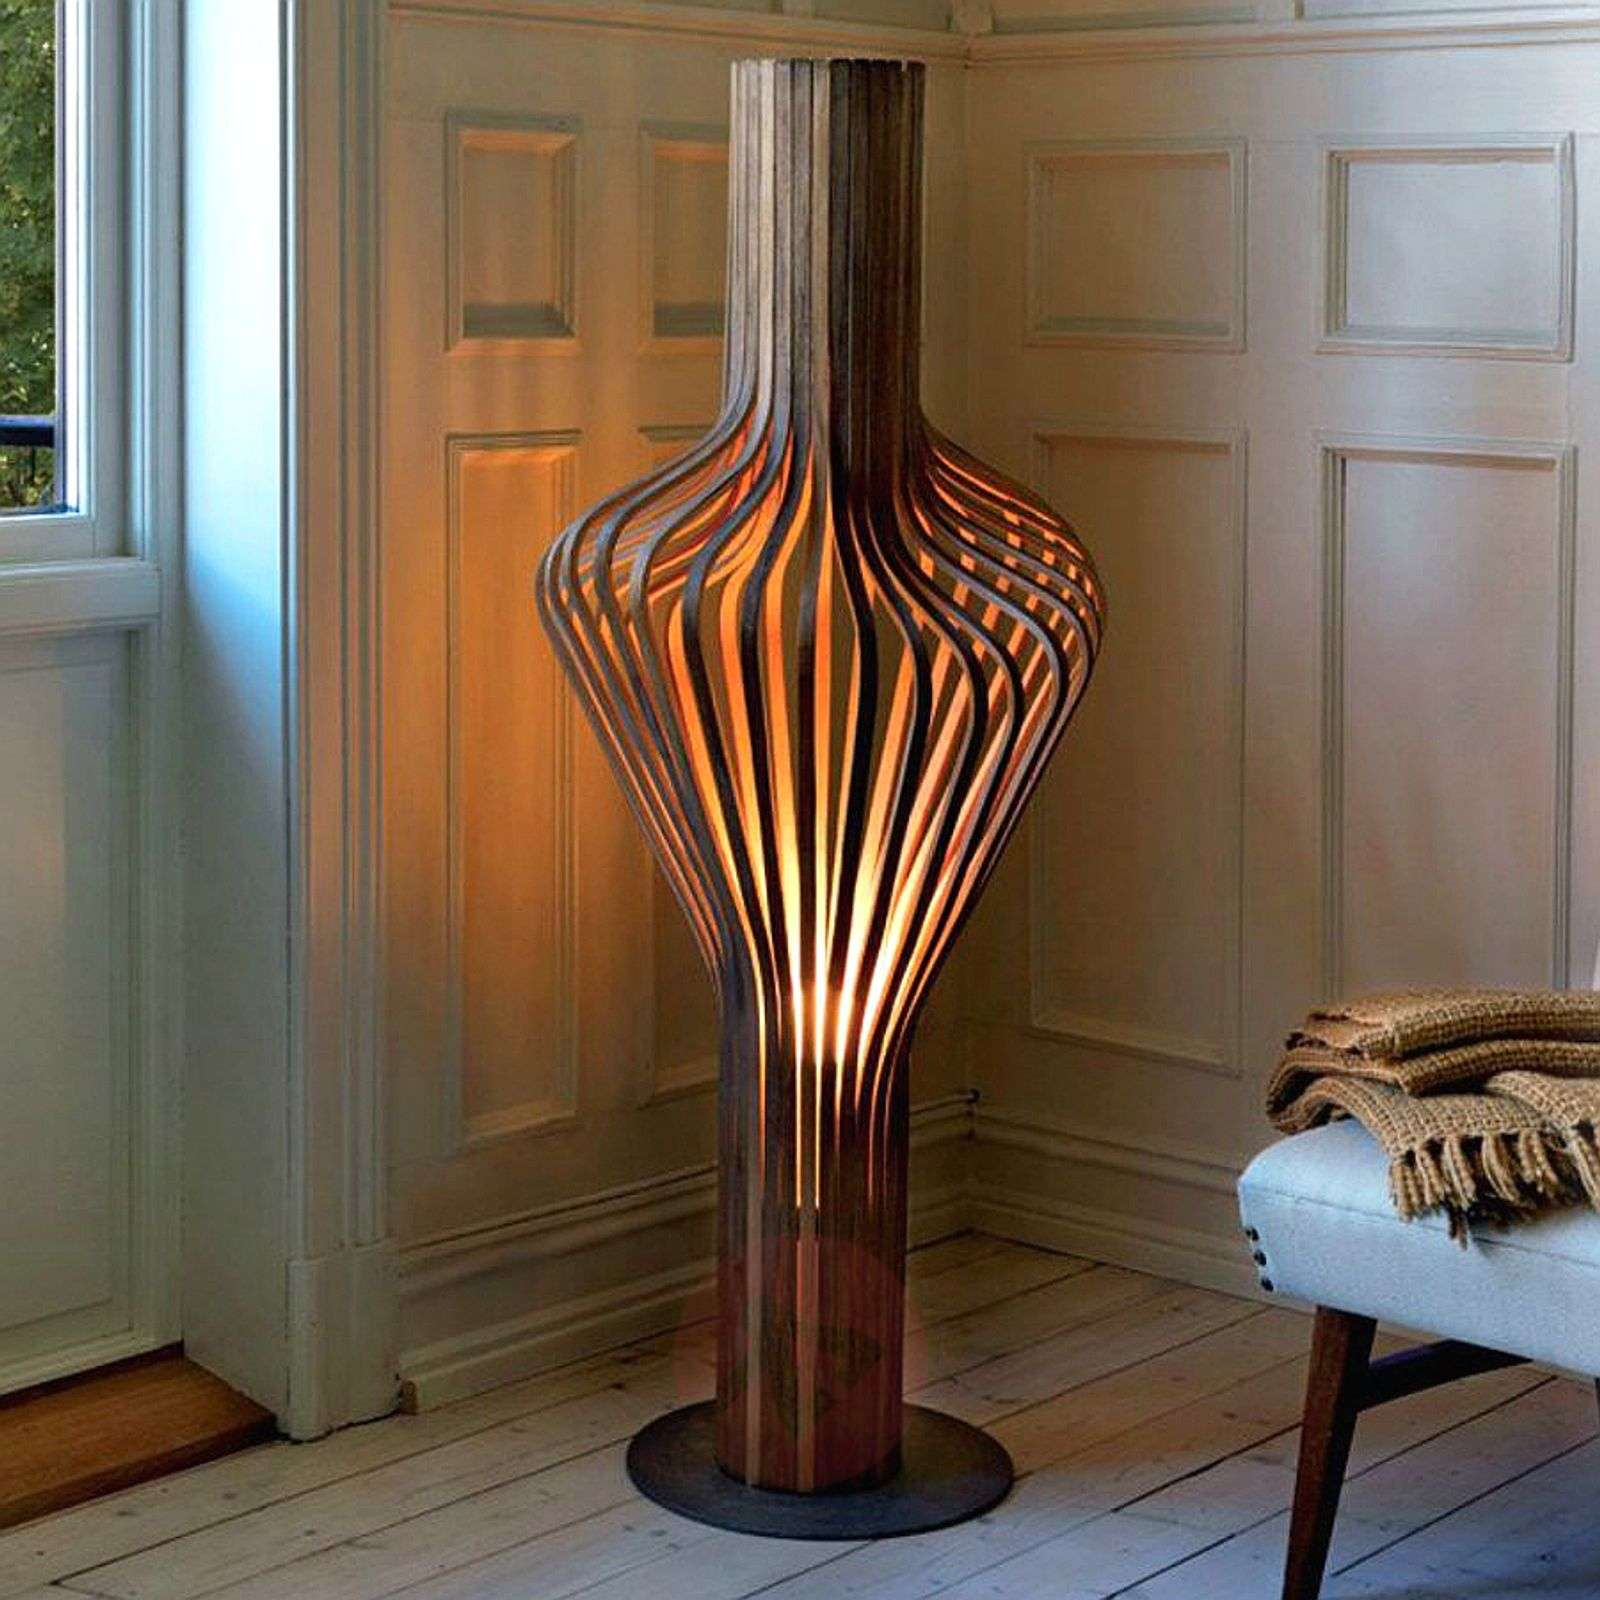 Dimmable designer floor lamp Diva, made of wood-7013001X-01